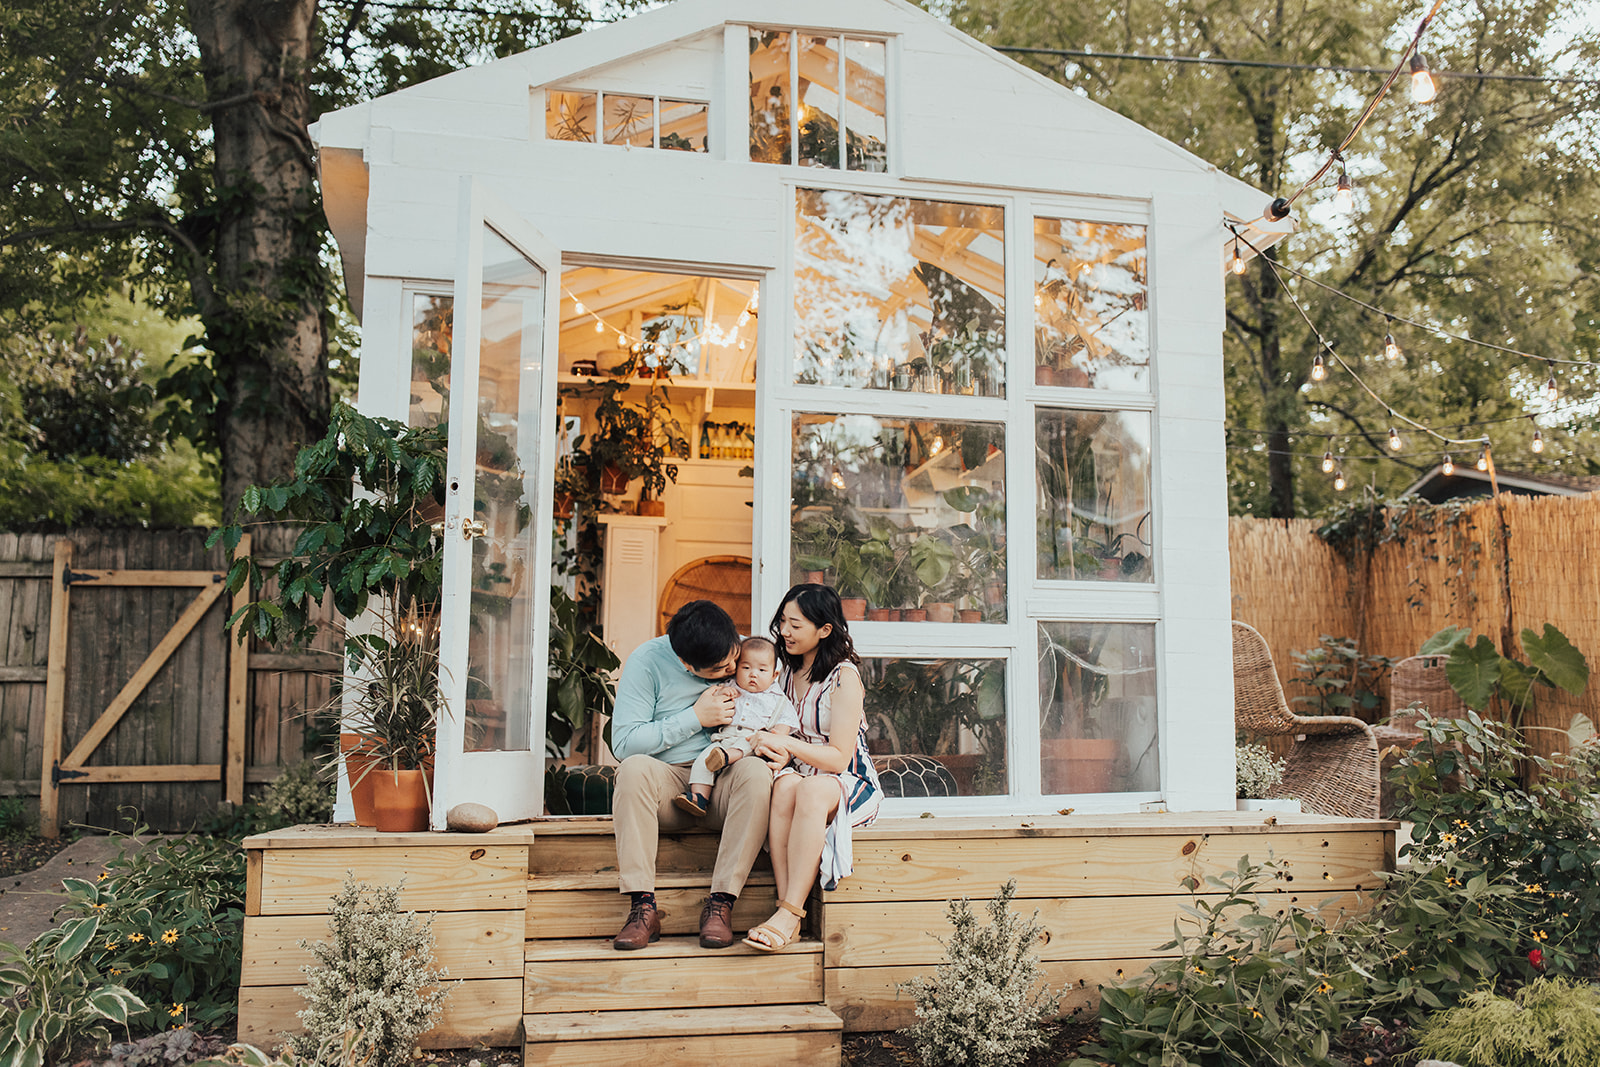 East Nashville Greenhouse family session by Fields & Freckles Photography